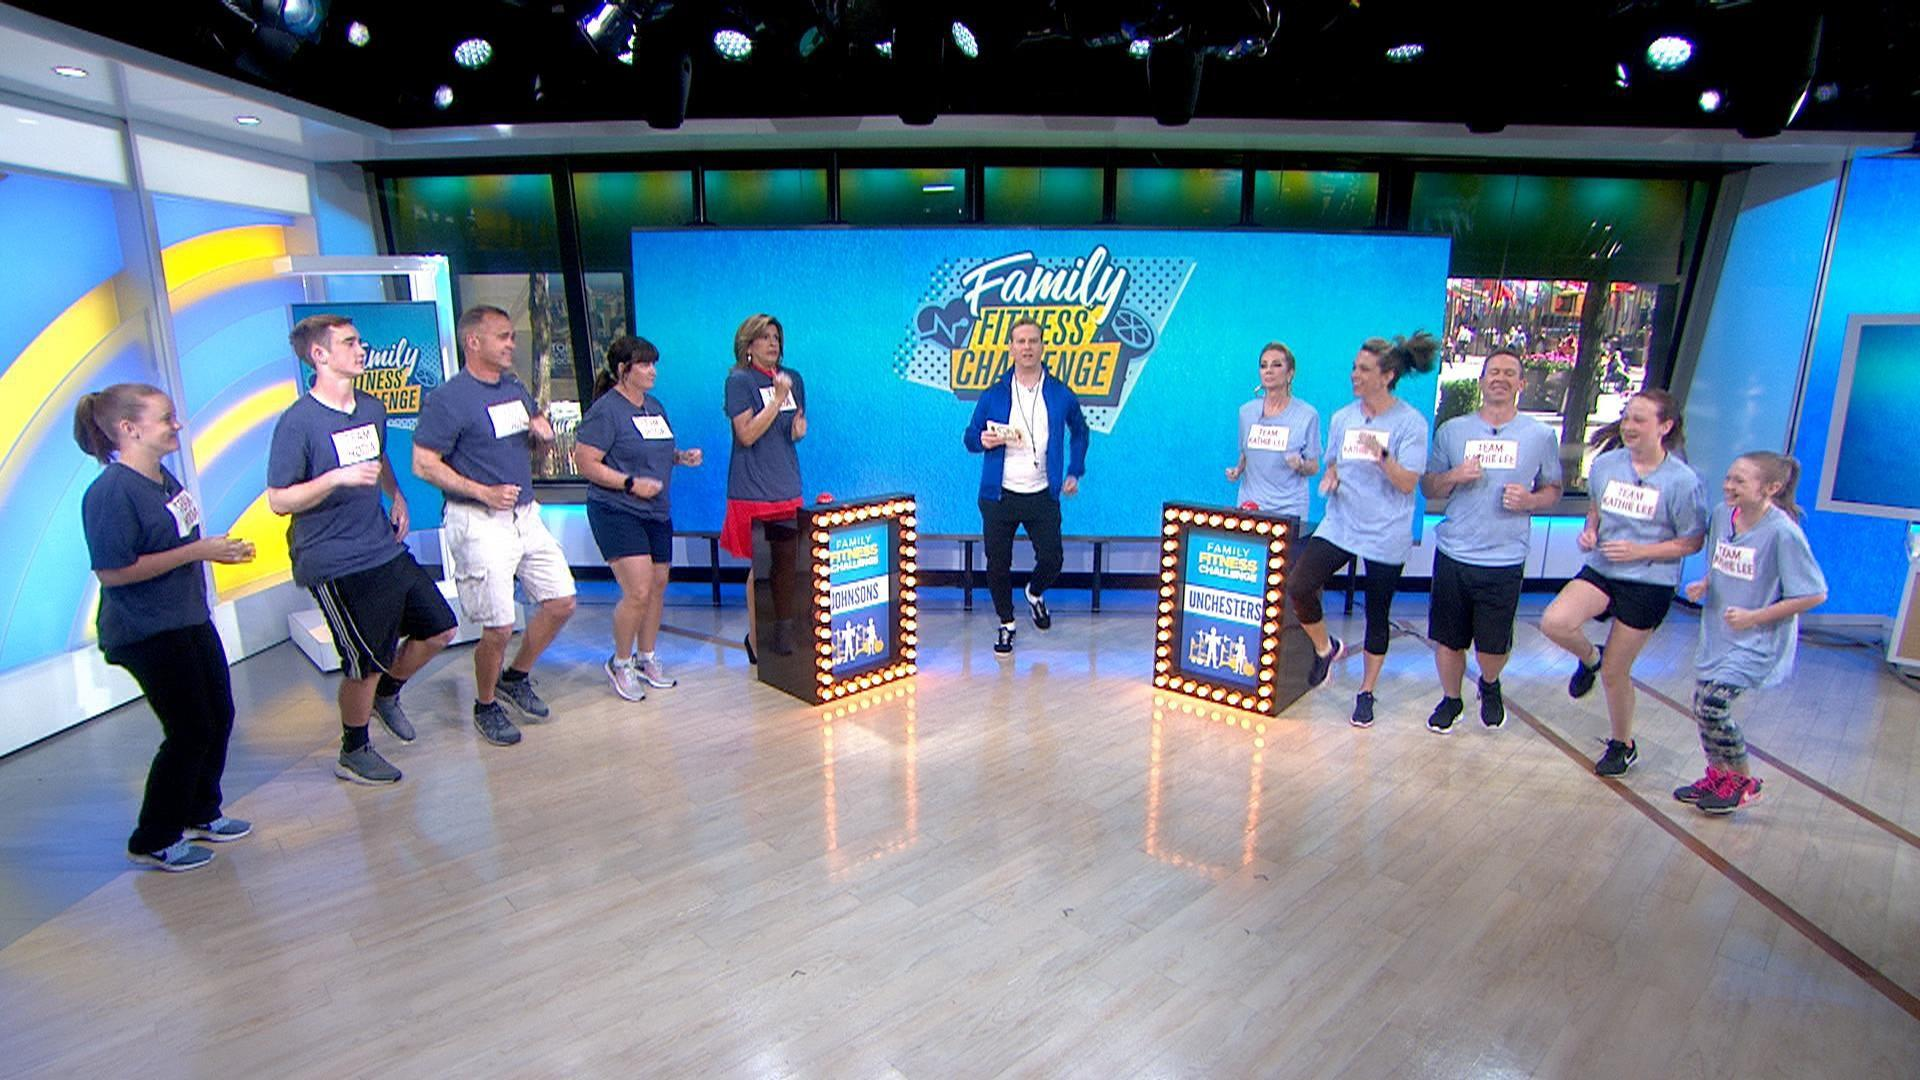 See Kathie Lee and Hoda square off in family fitness challenge